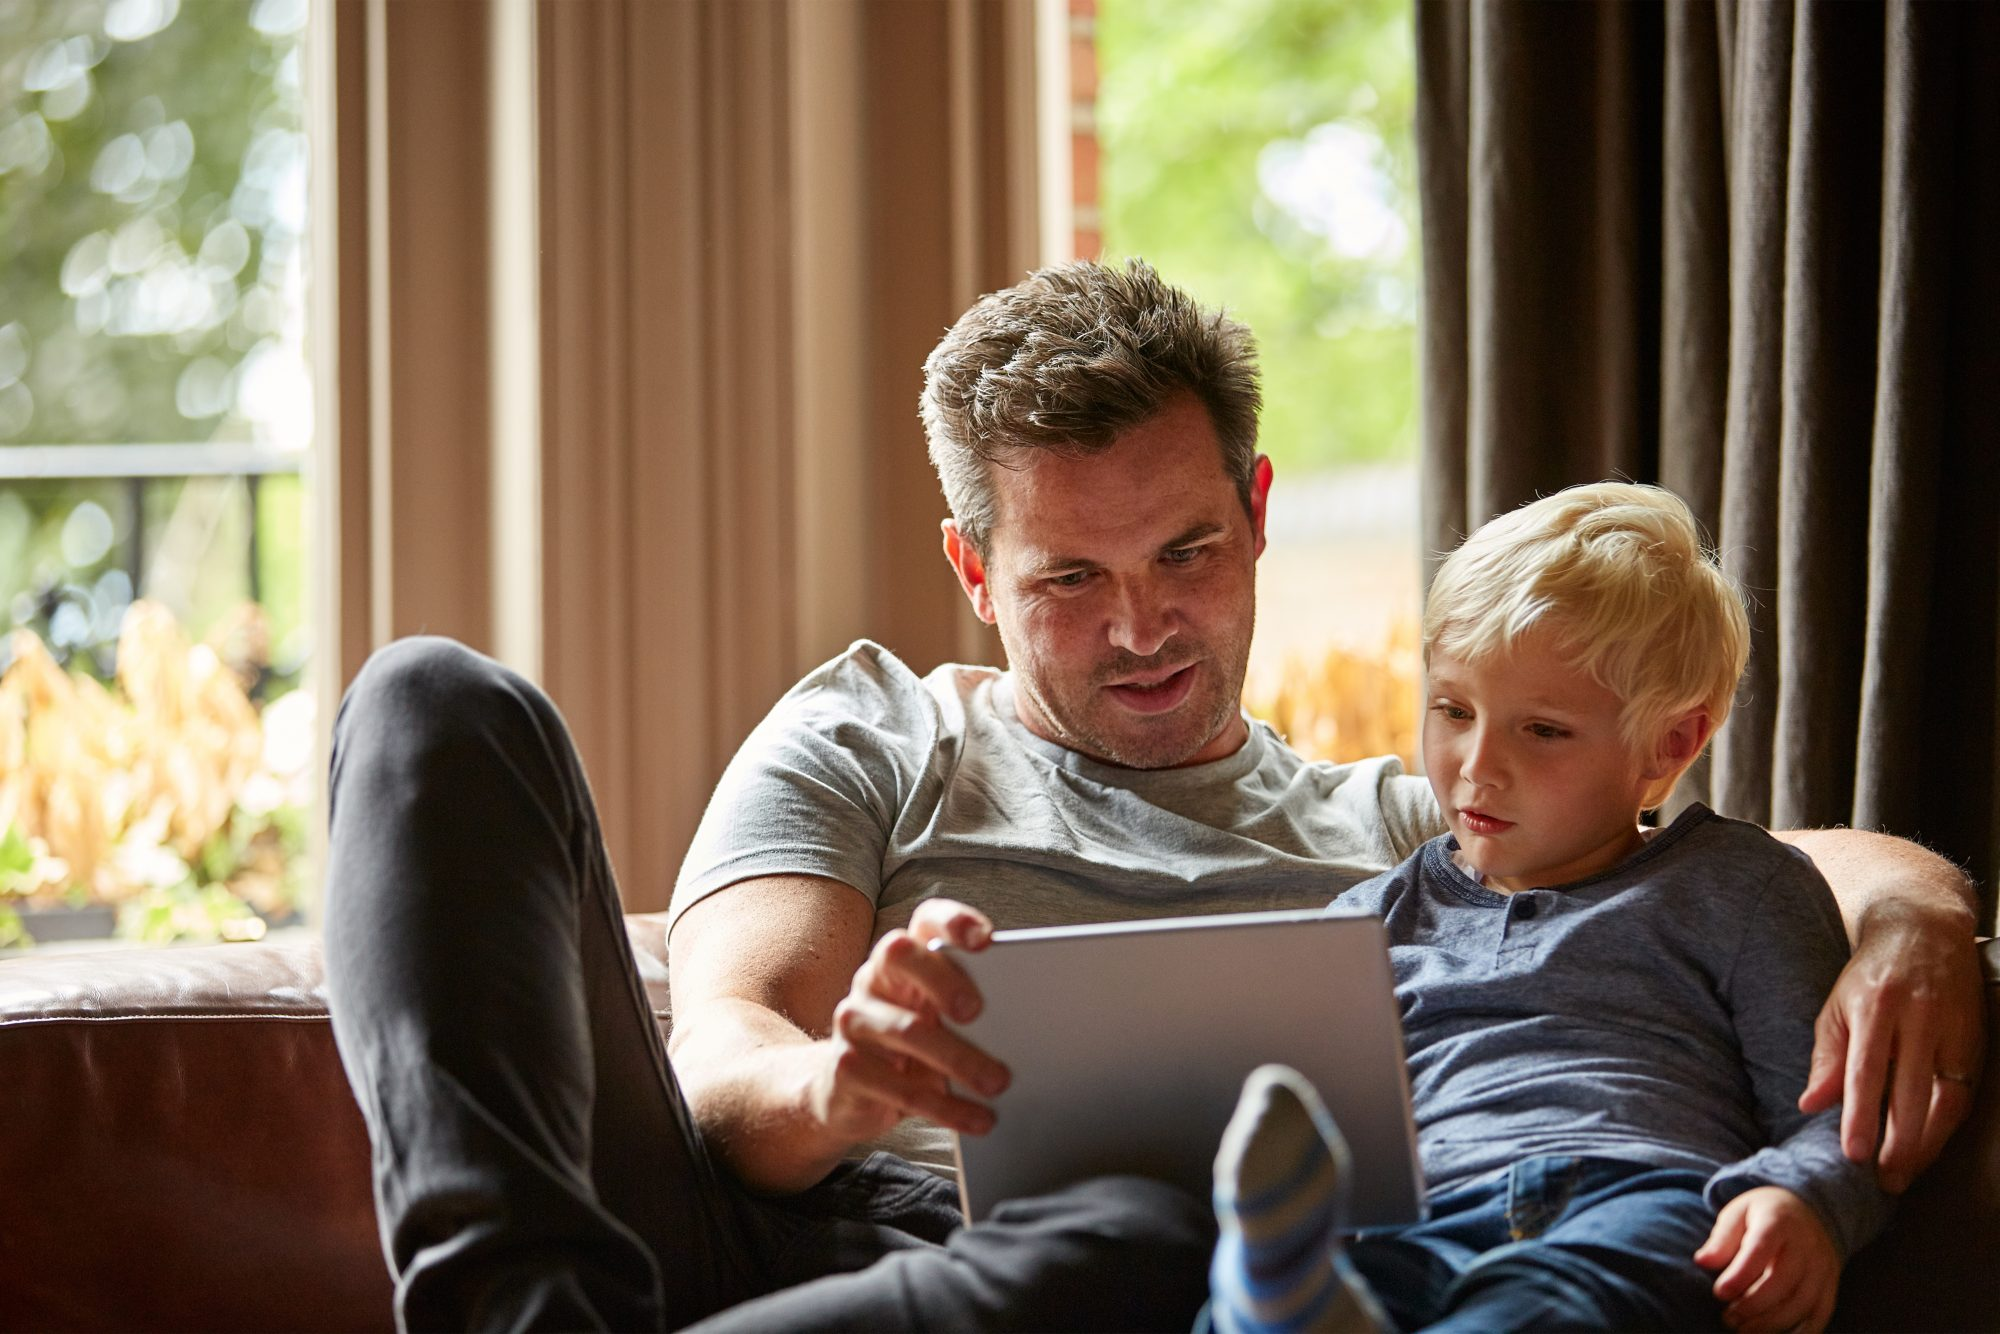 Middle aged man sitting with young son looking at a tablet.